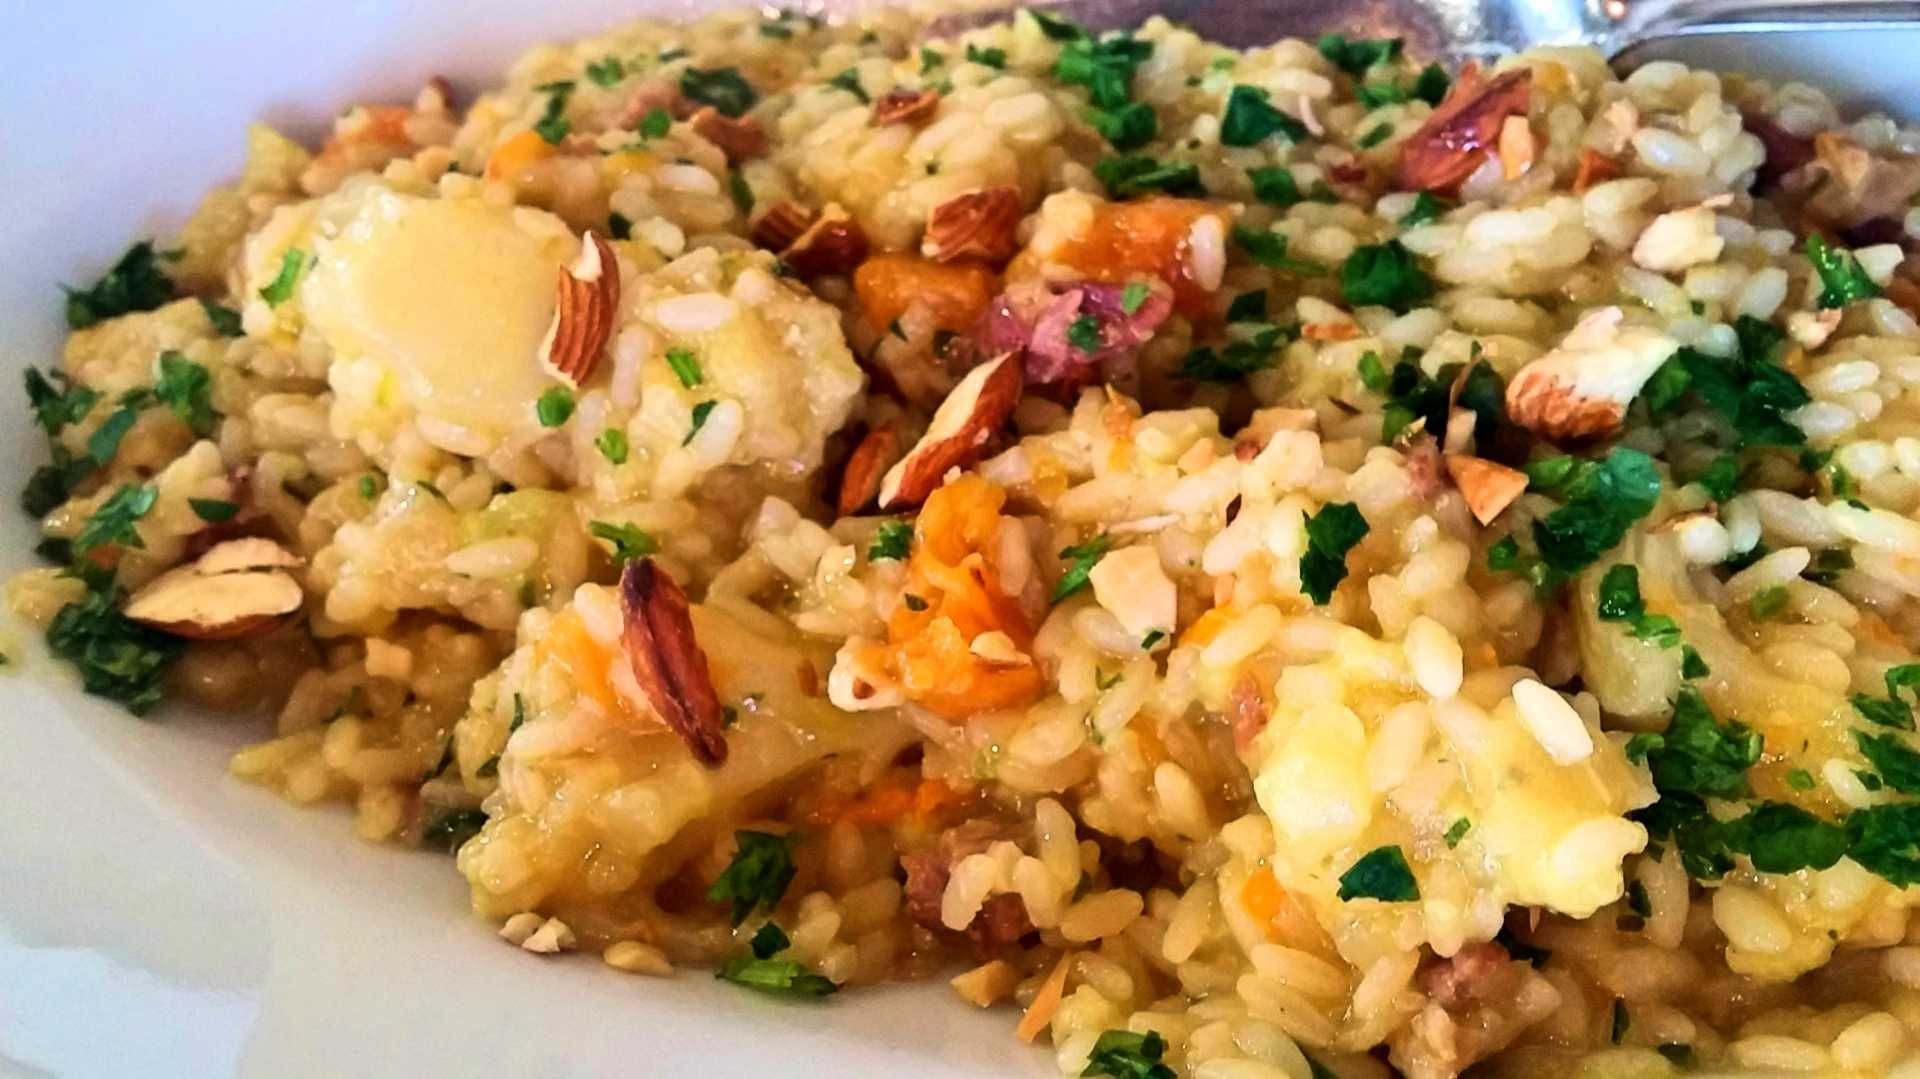 risotto with meat sauce and mushrooms